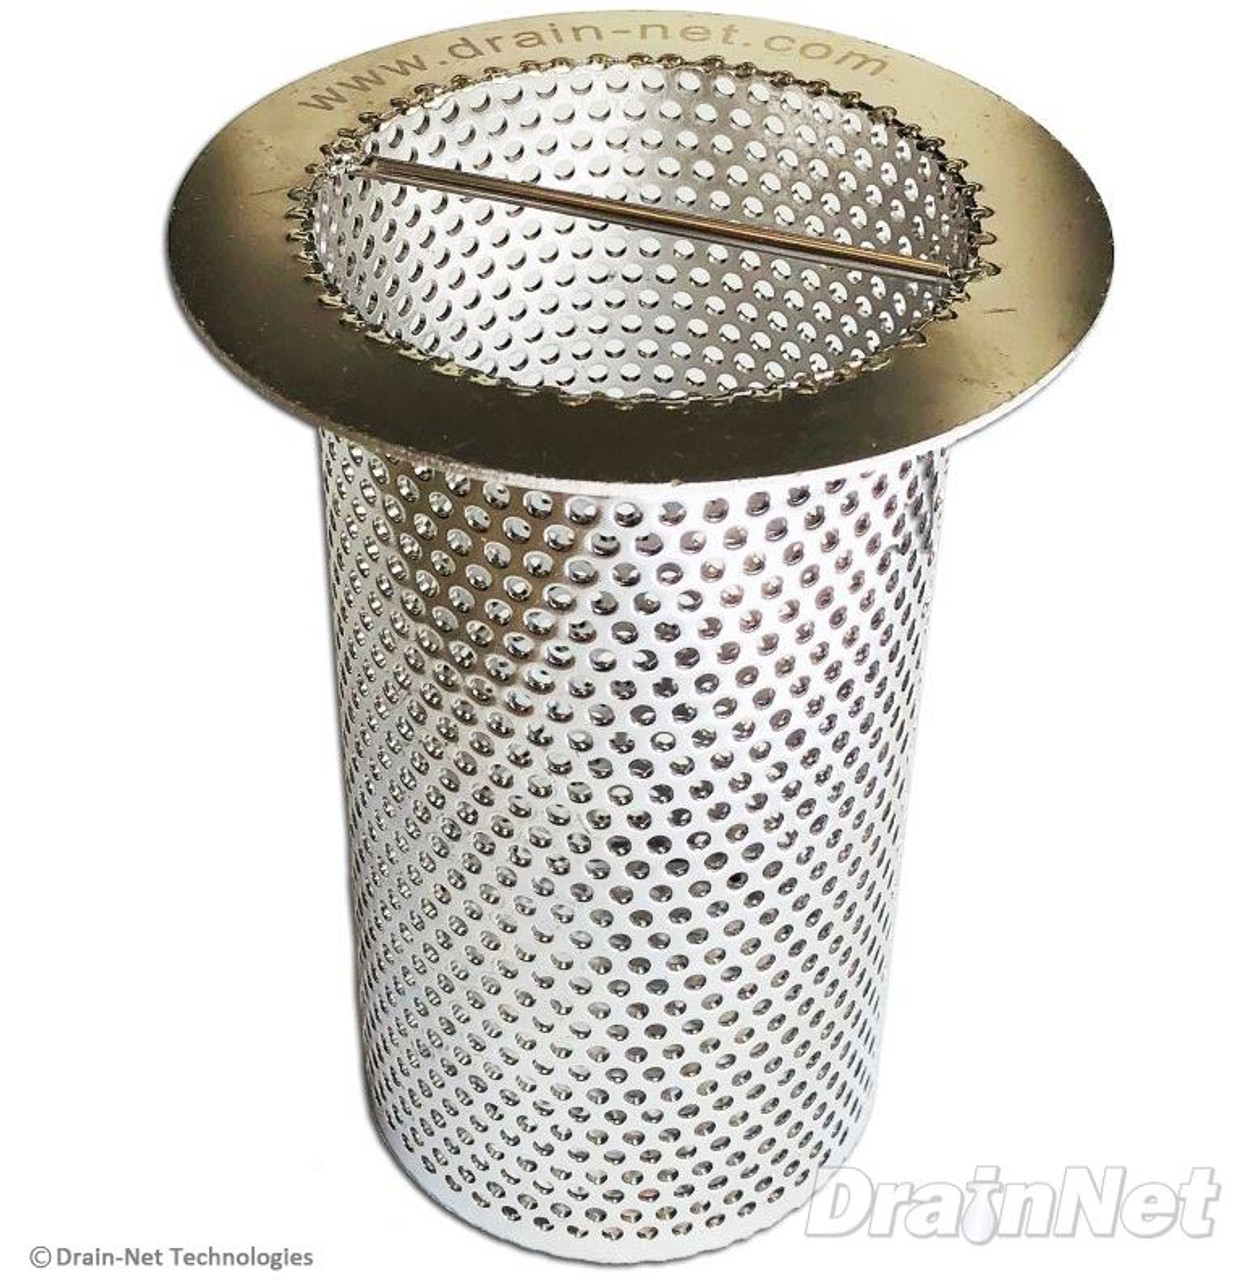 Stainless Steel Perforated Drain Strainer